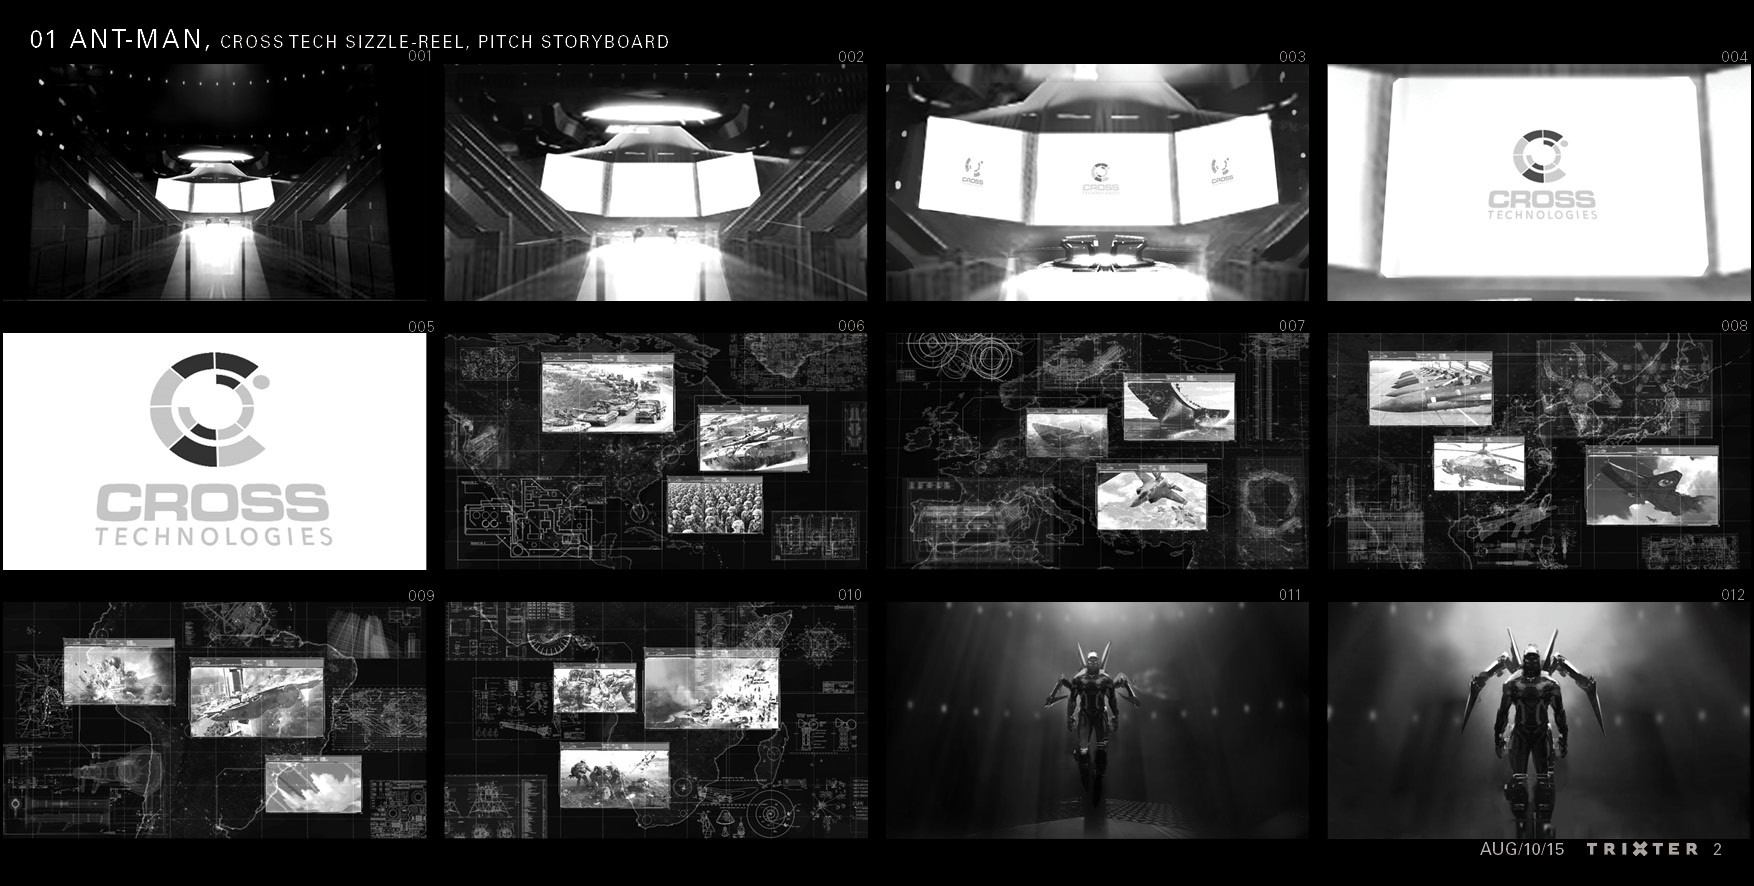 Paolo giandoso ant man cross tech sizzle reel pitch stb page 02